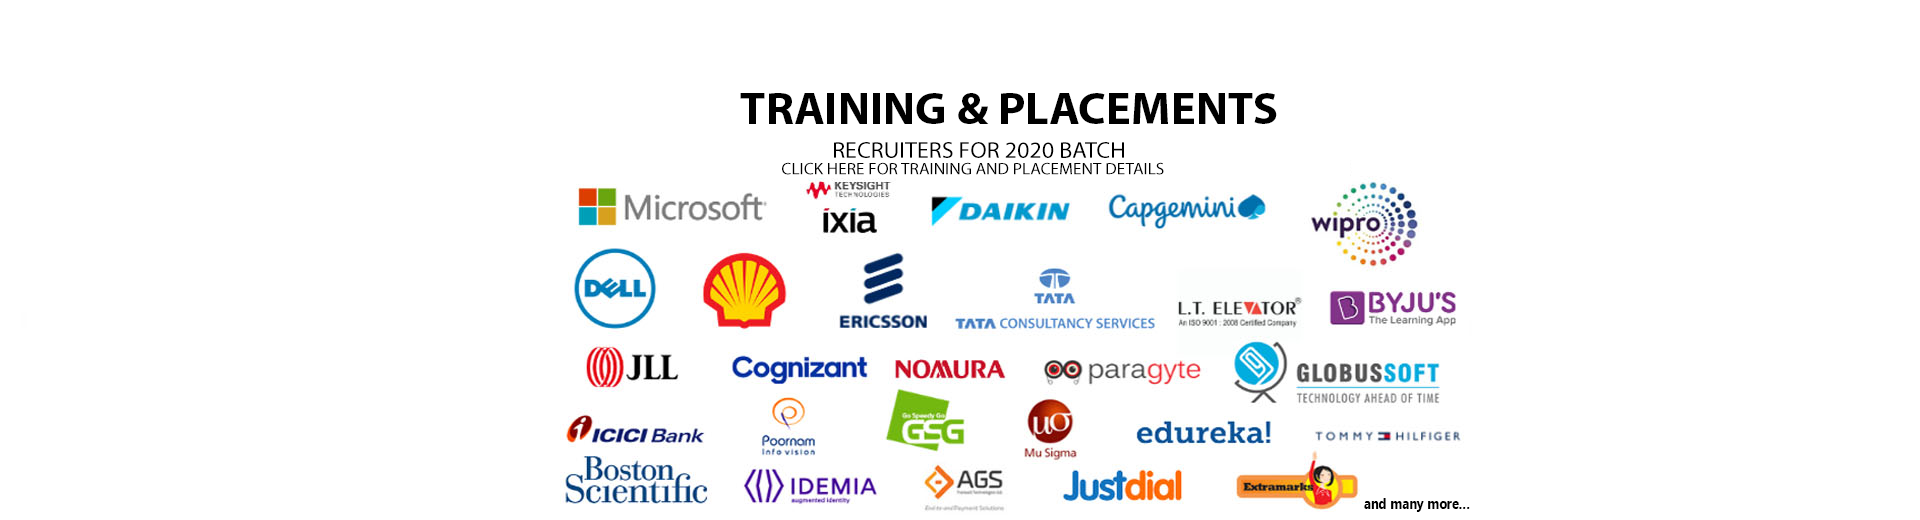 Training & Placements Liasion - smit